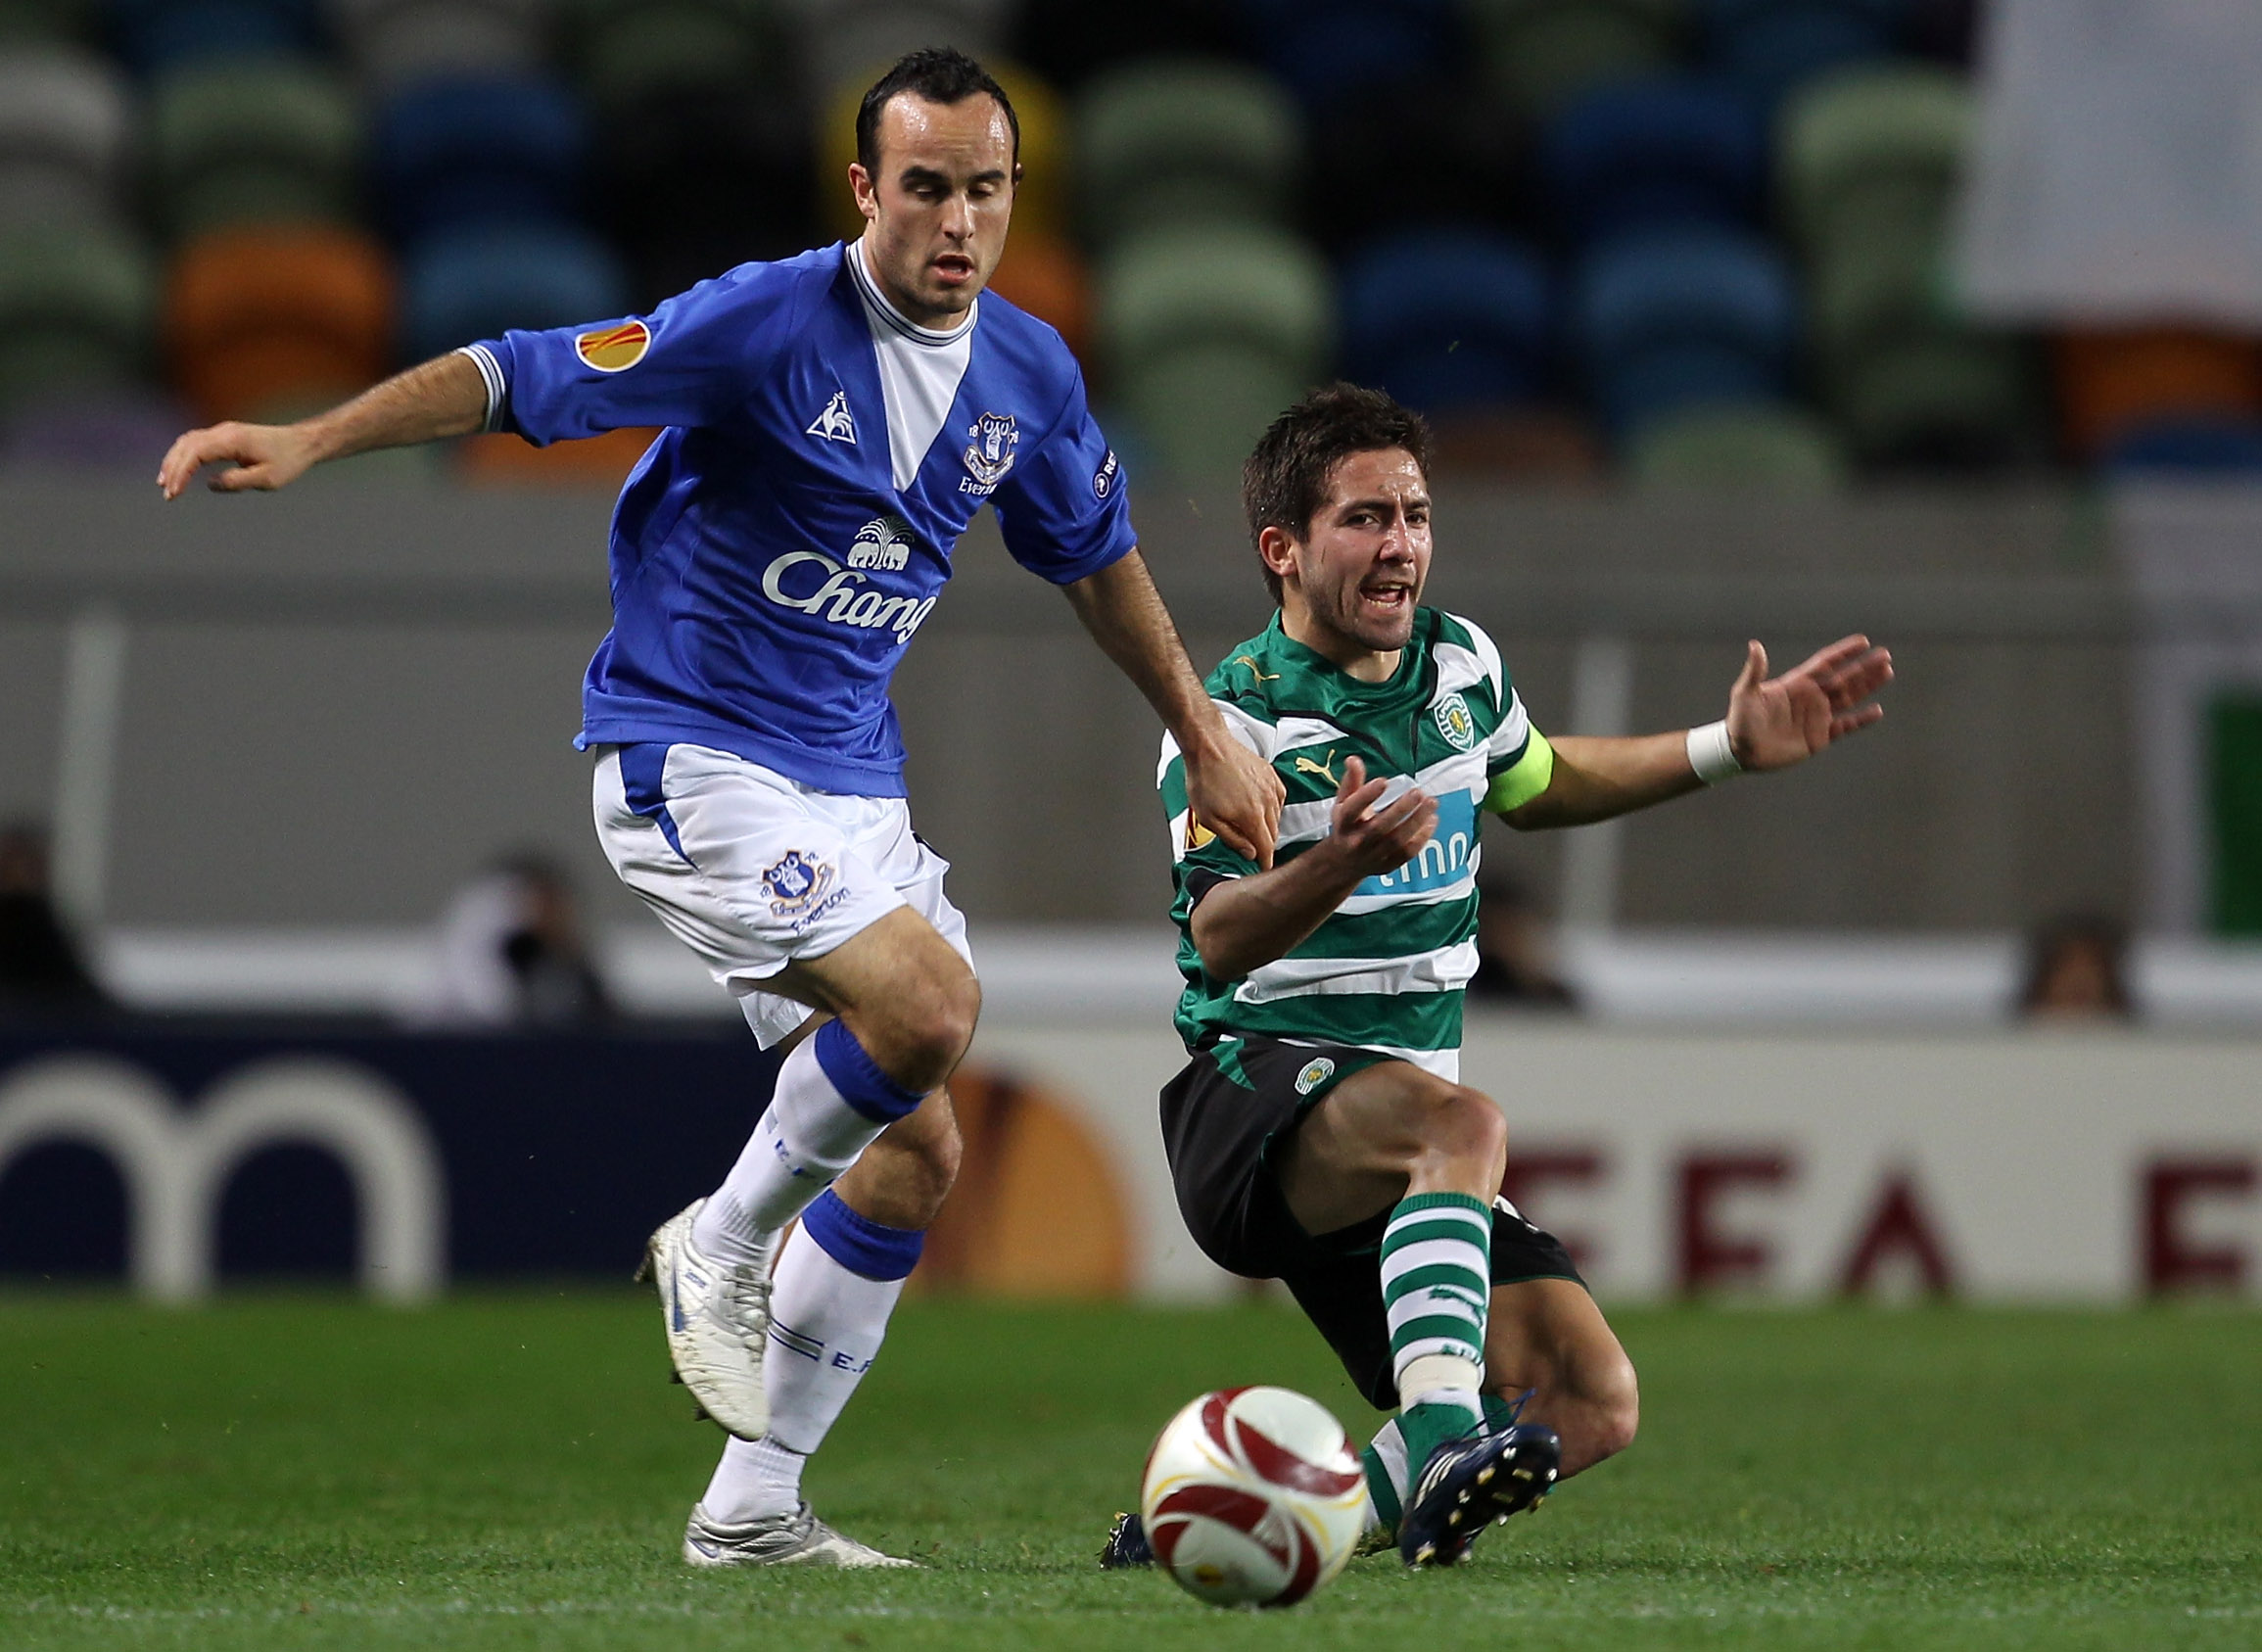 Donovan in action against Sporting Lisbon during his first loan spell at Everton in 2010